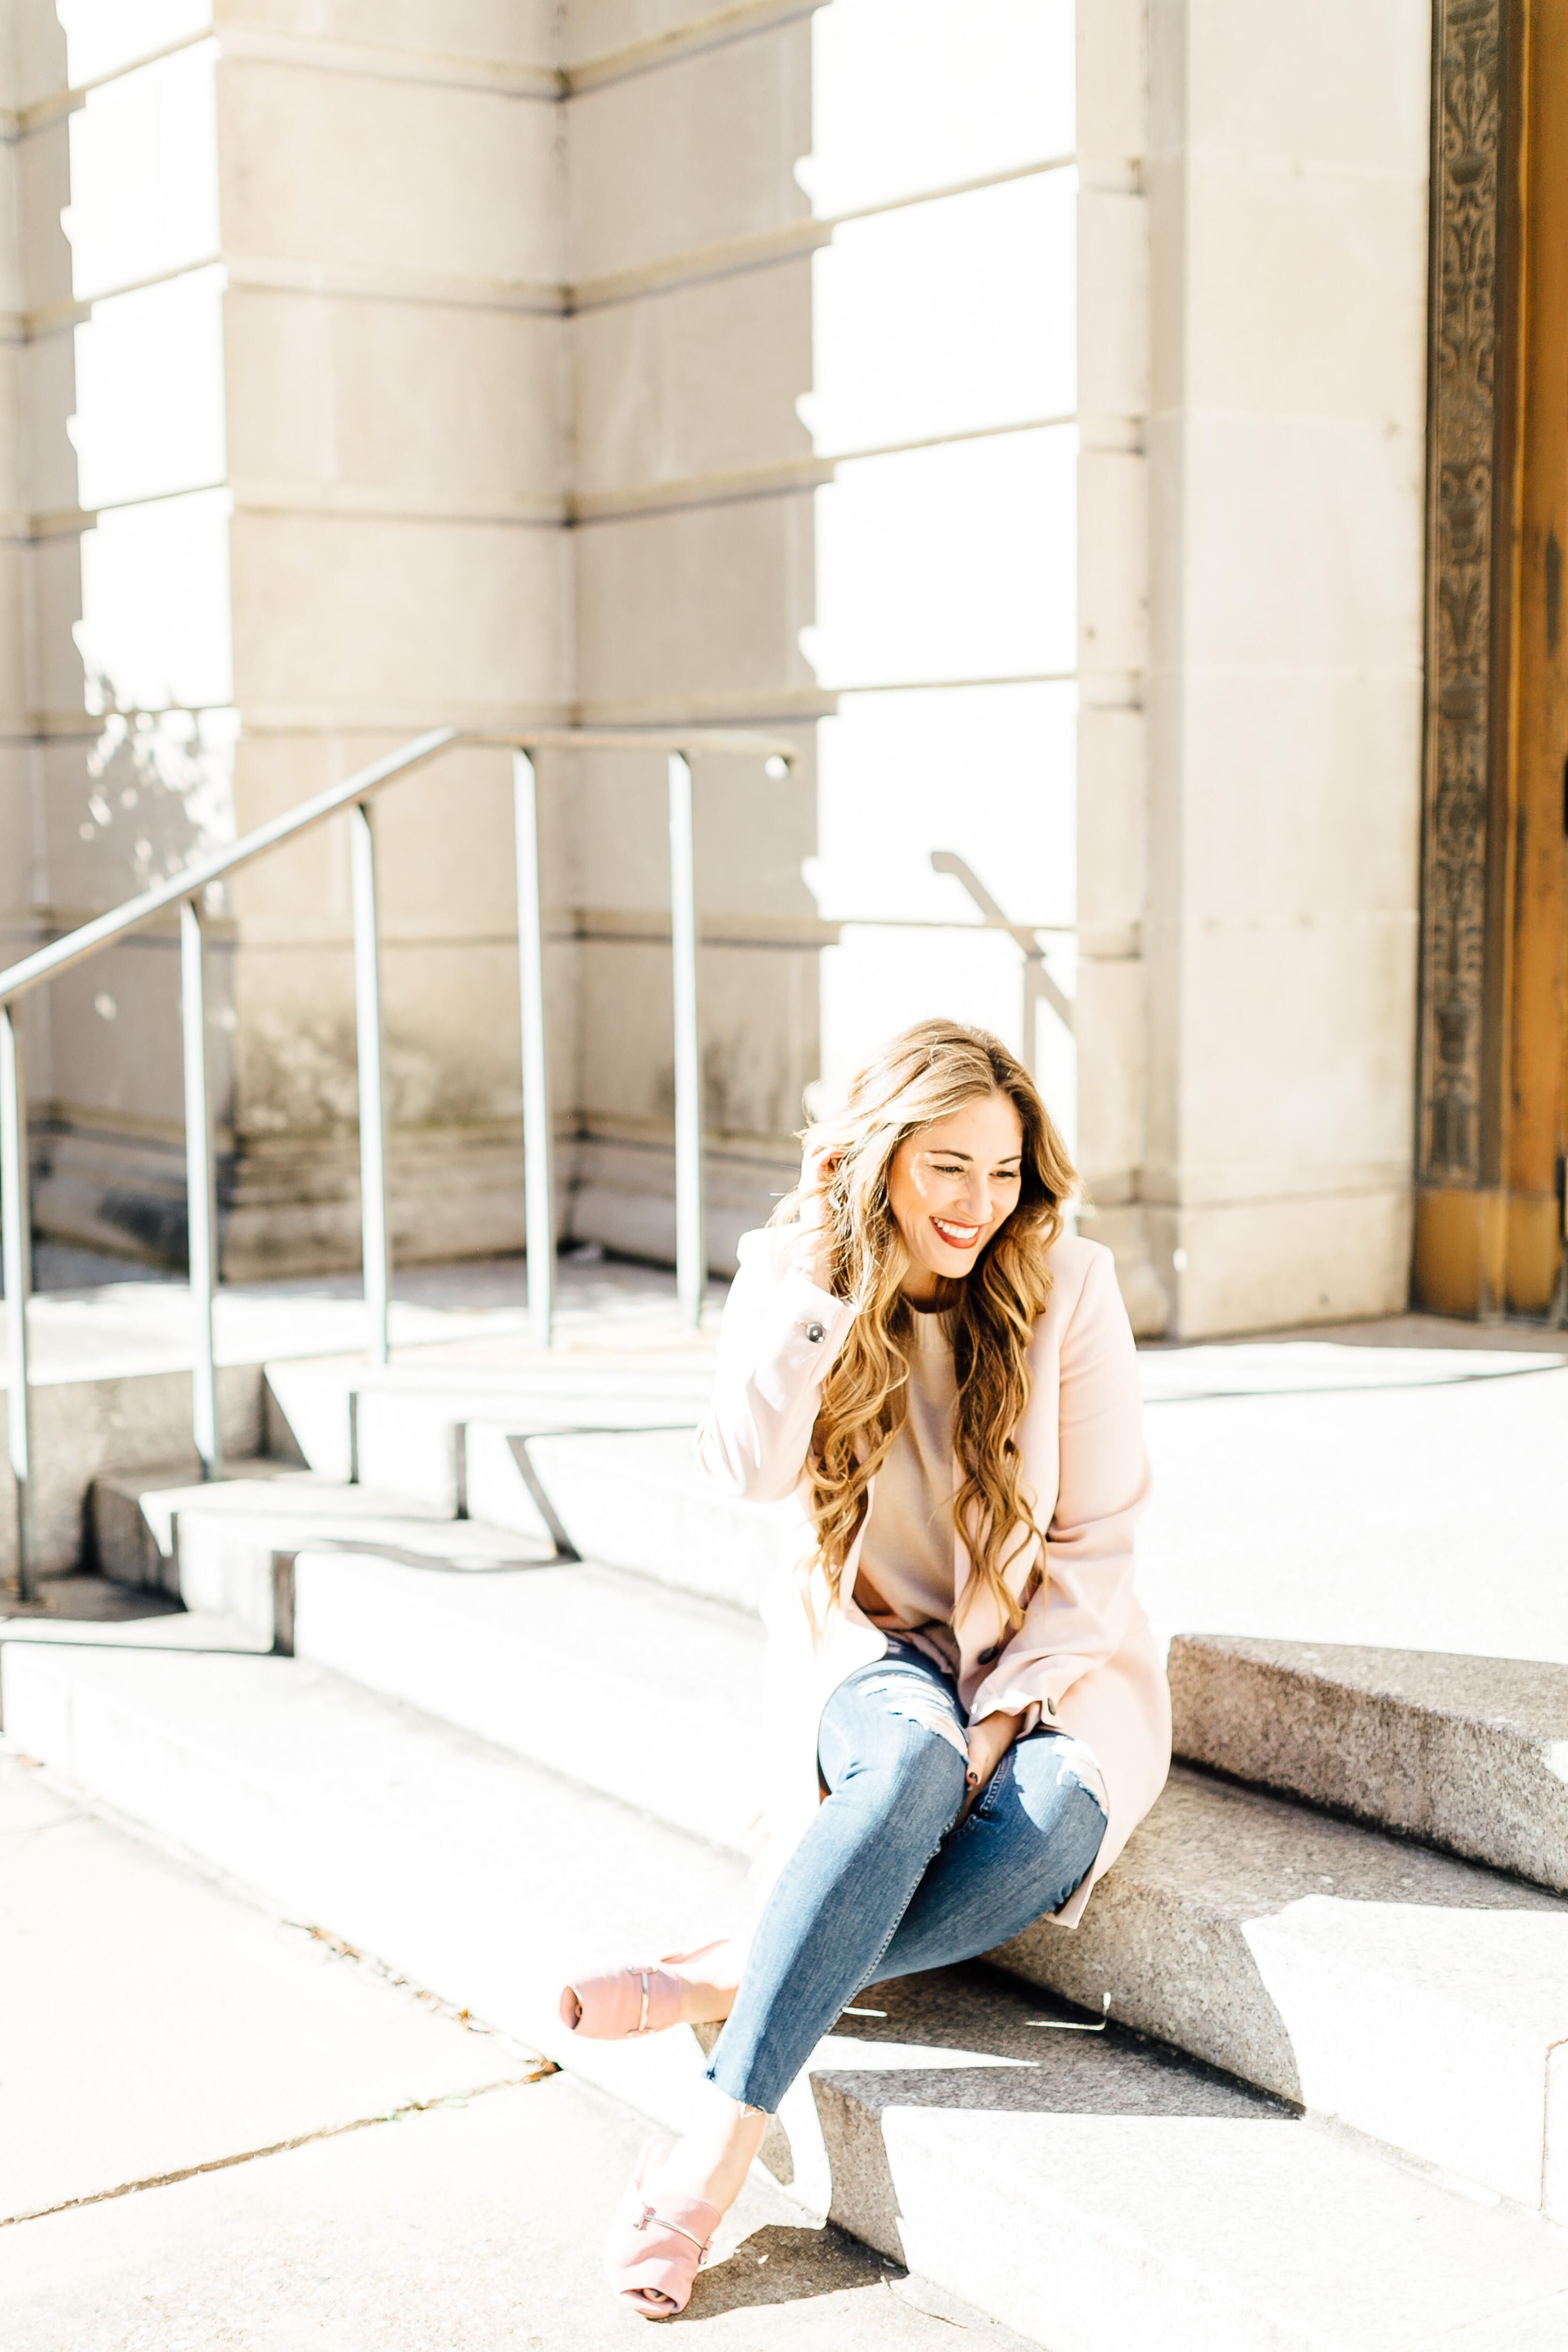 Trend Spin Linkup: Pink Ruffle Coat from Banana Republic by East Memphis fashion blogger Walking in Memphis in High Heels